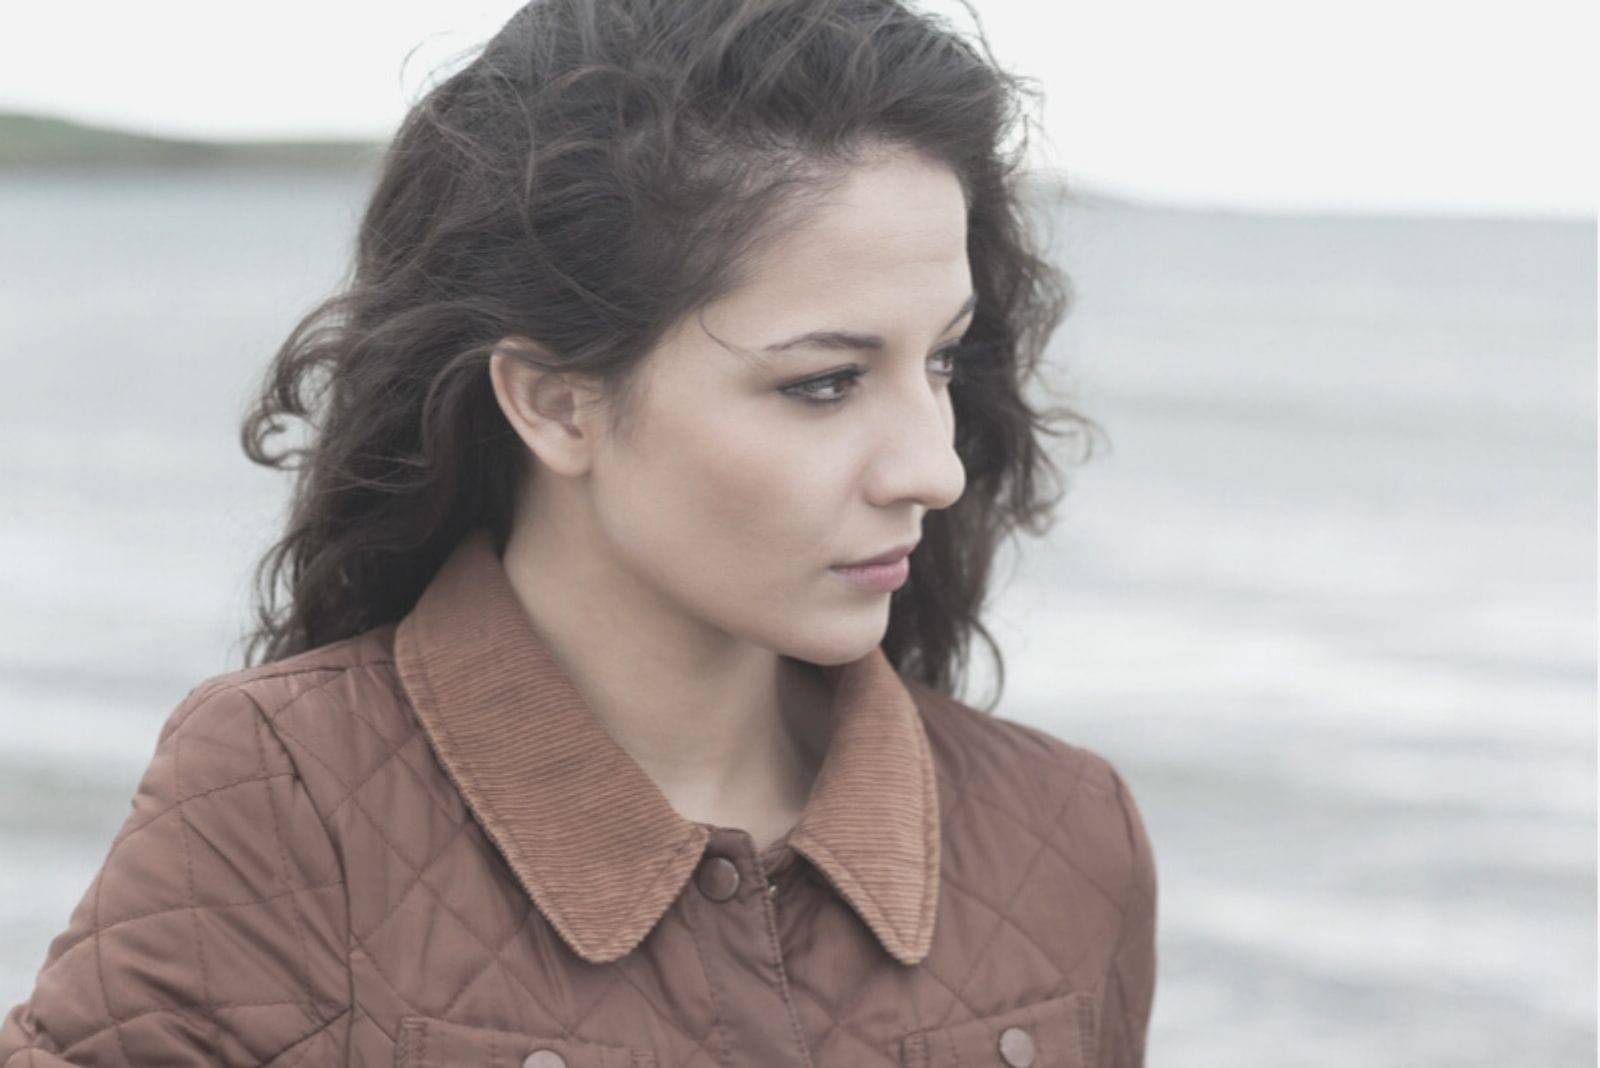 young woman thoughtful and looking at the sea wearing coat in close up image